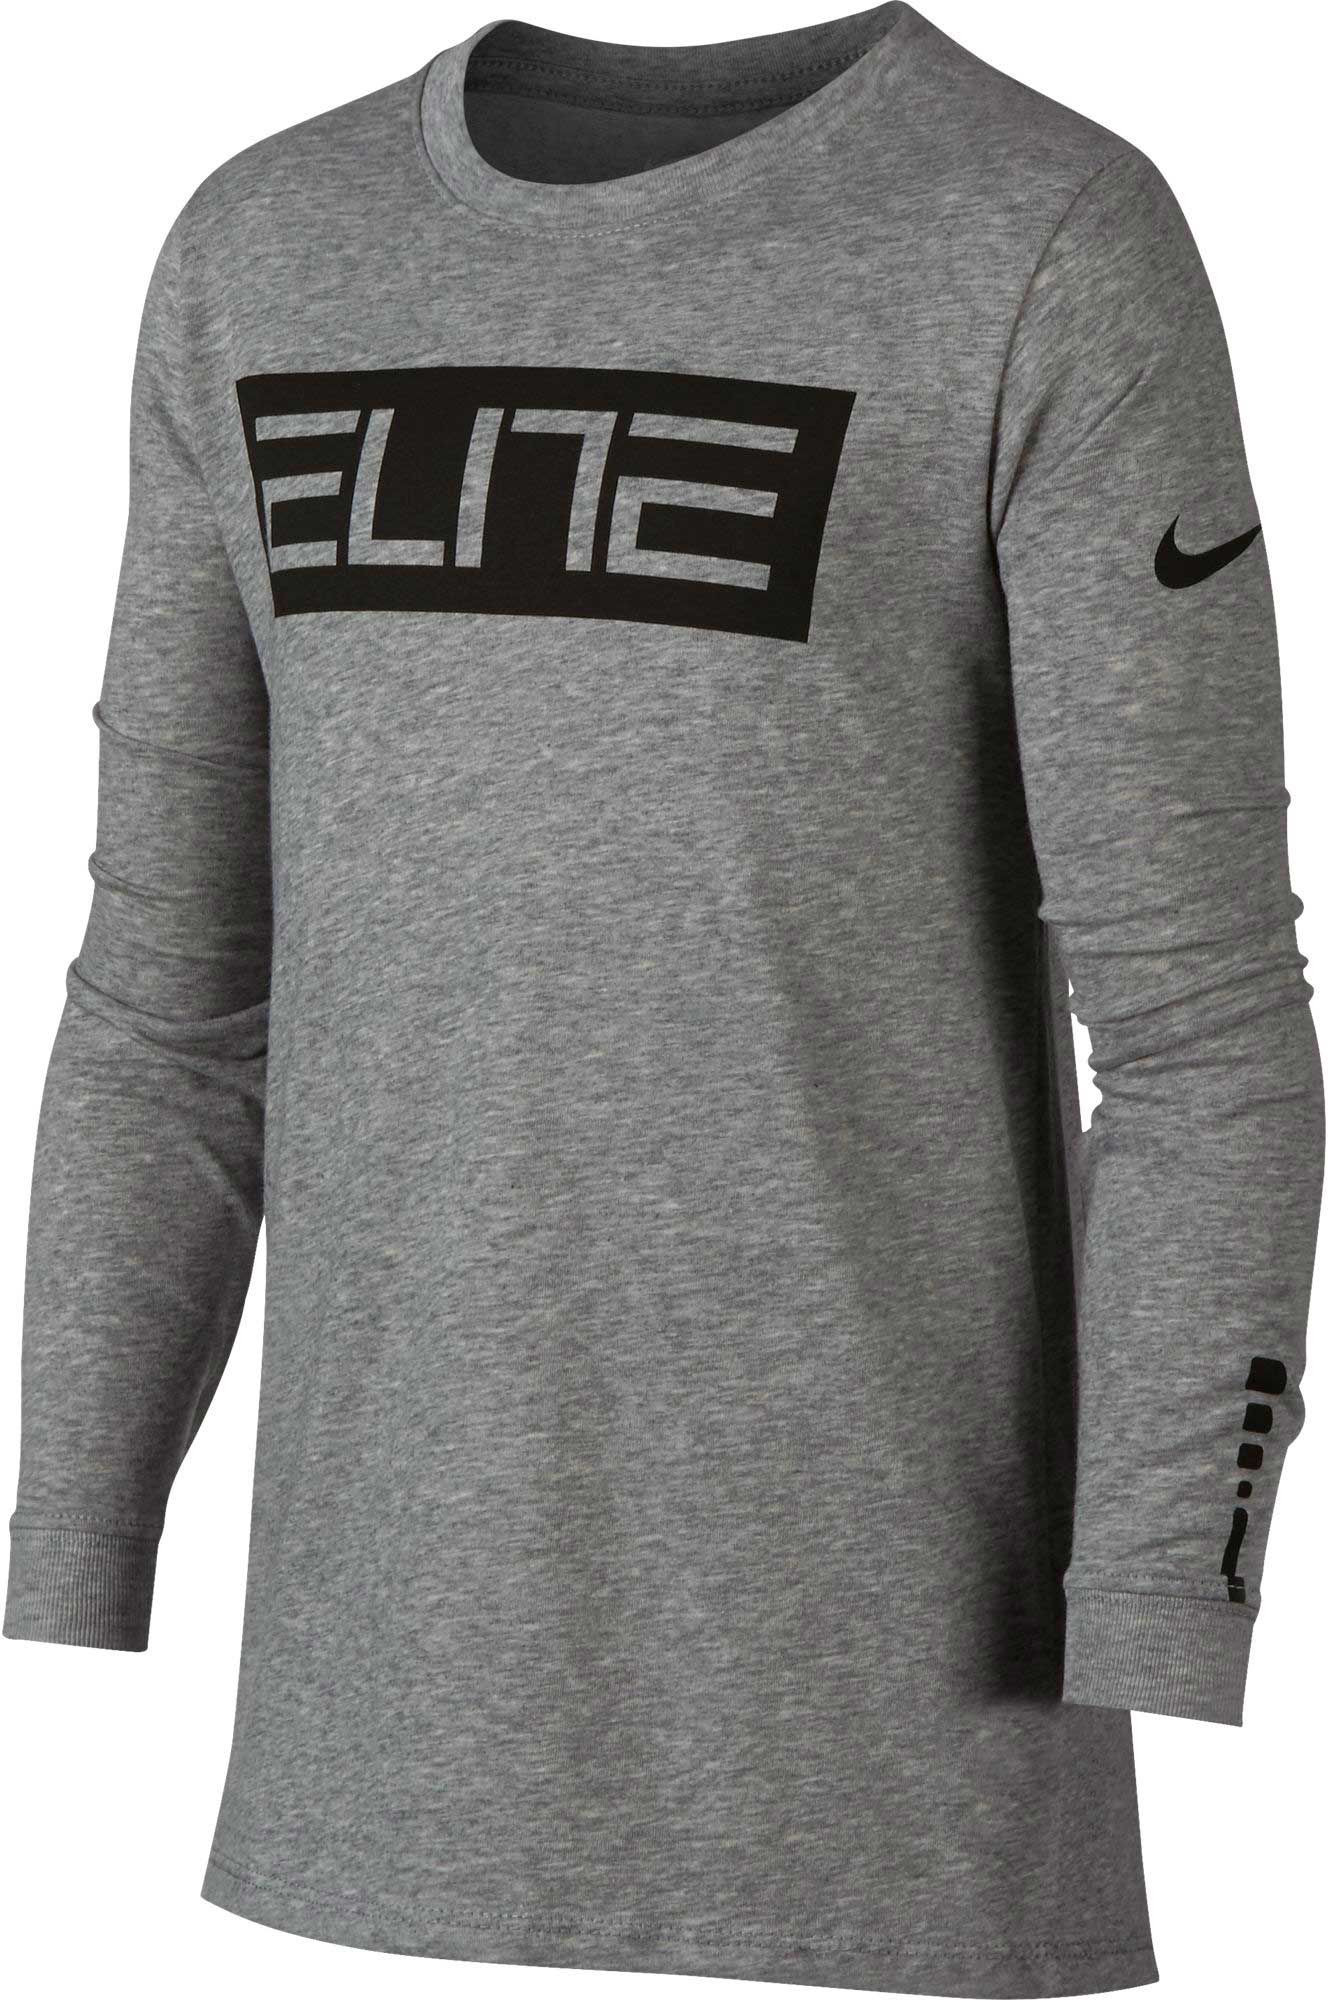 Nike Boys' Dry Elite Long Sleeve Shirt | DICK'S Sporting Goods